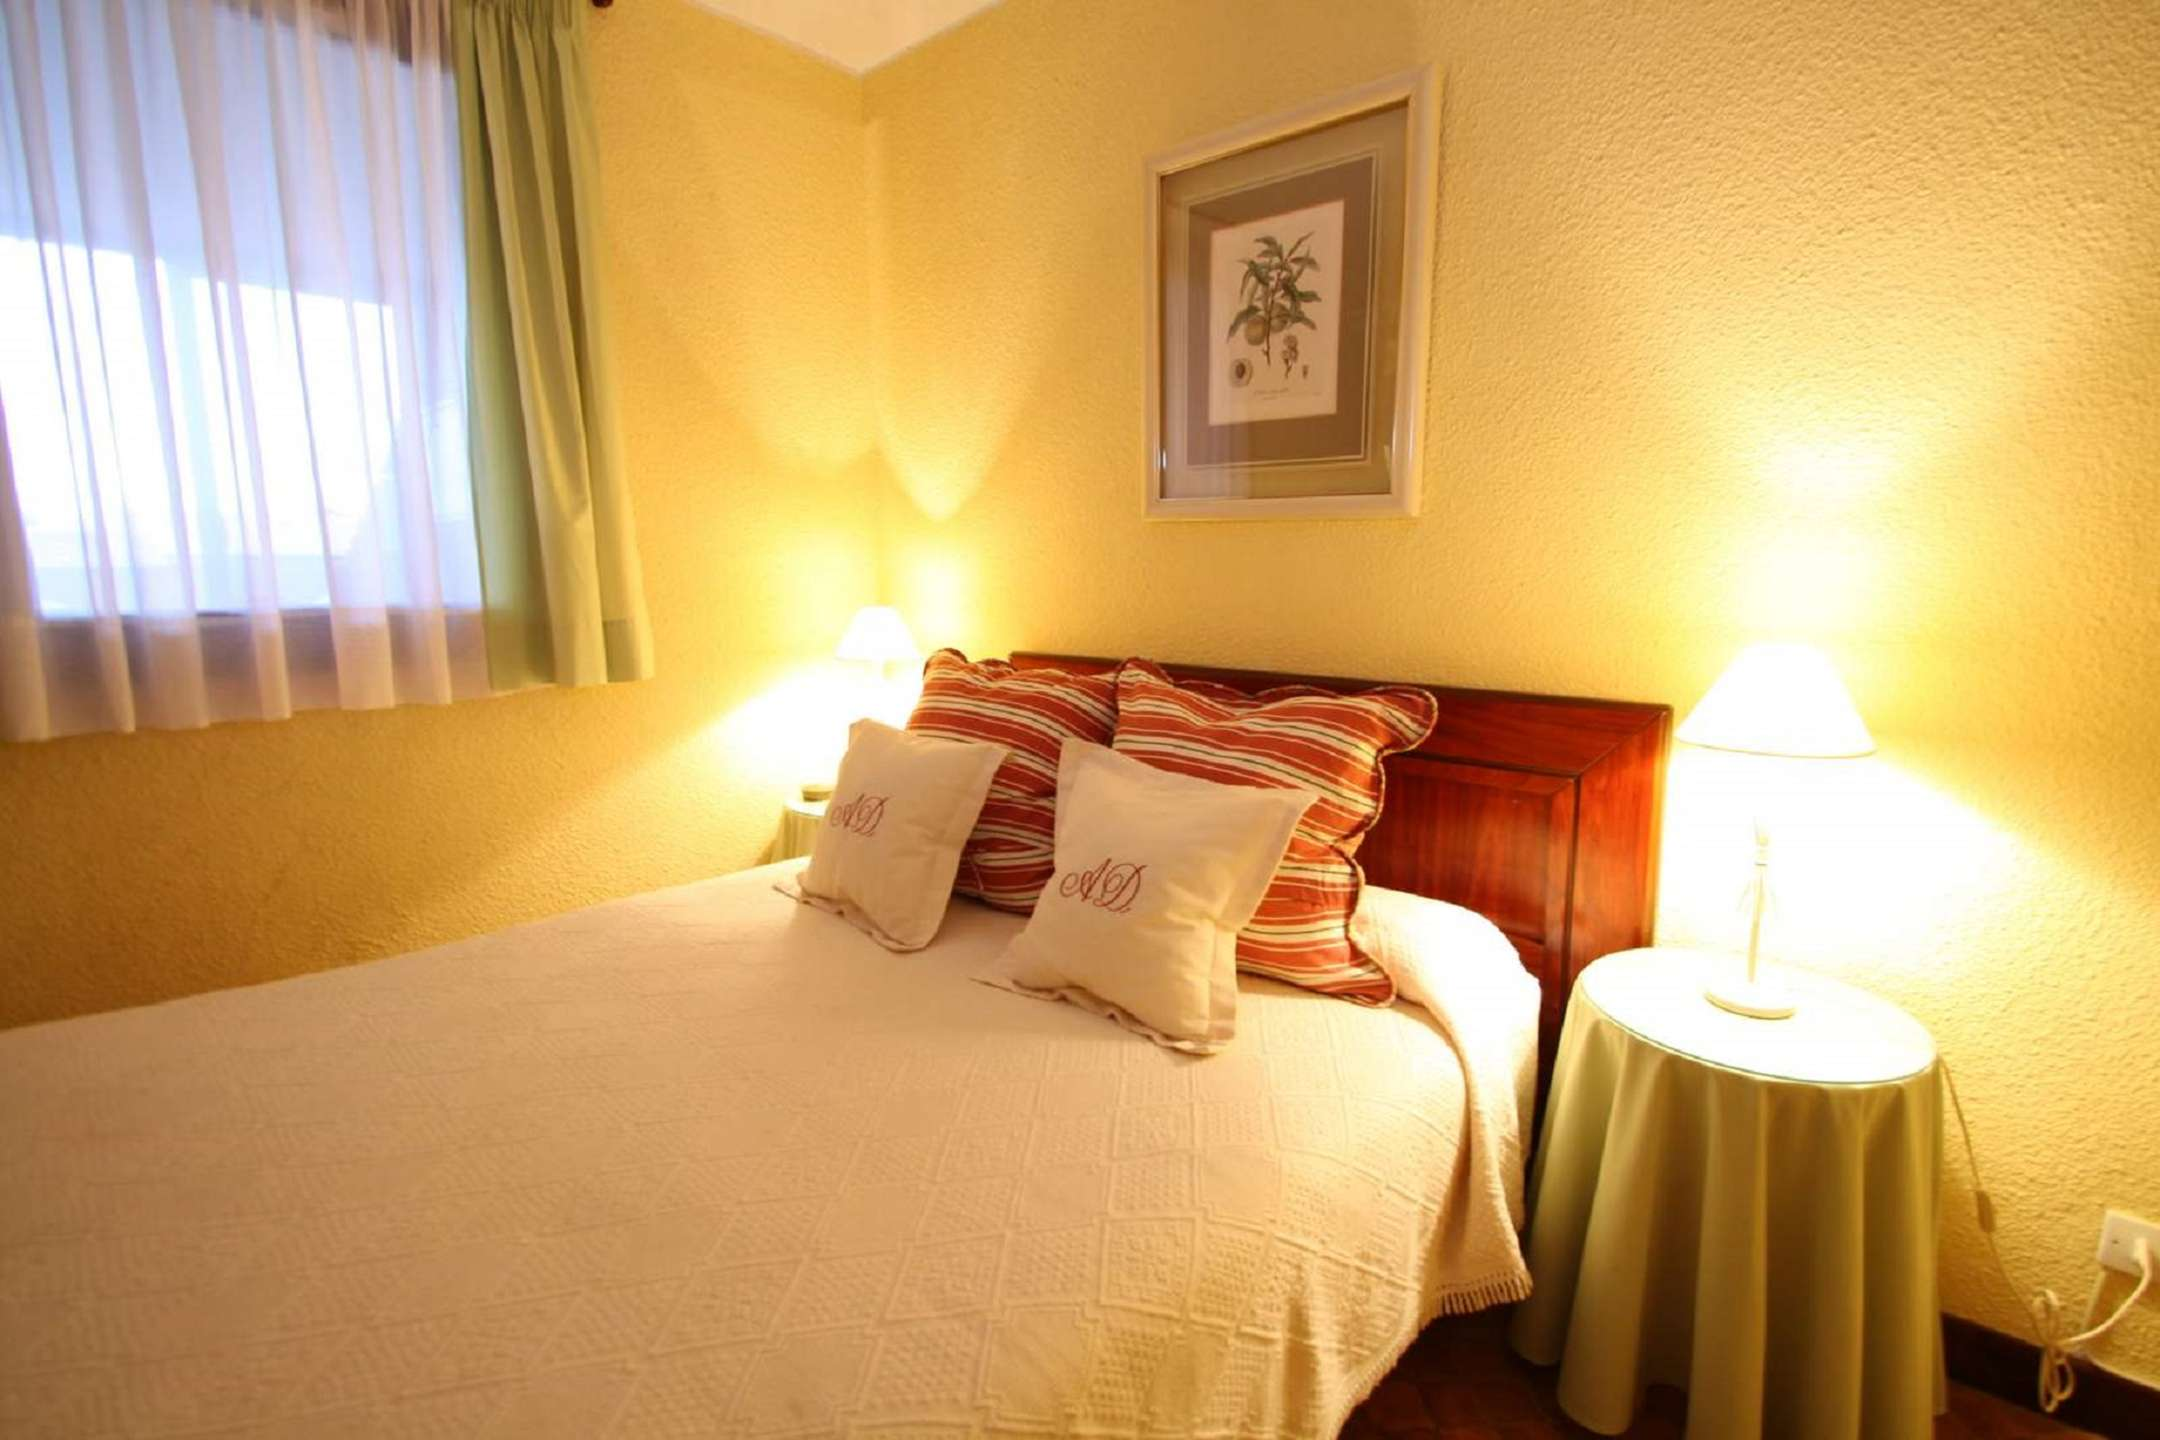 Apartment holiday rental for 6 in Vieux Boucau